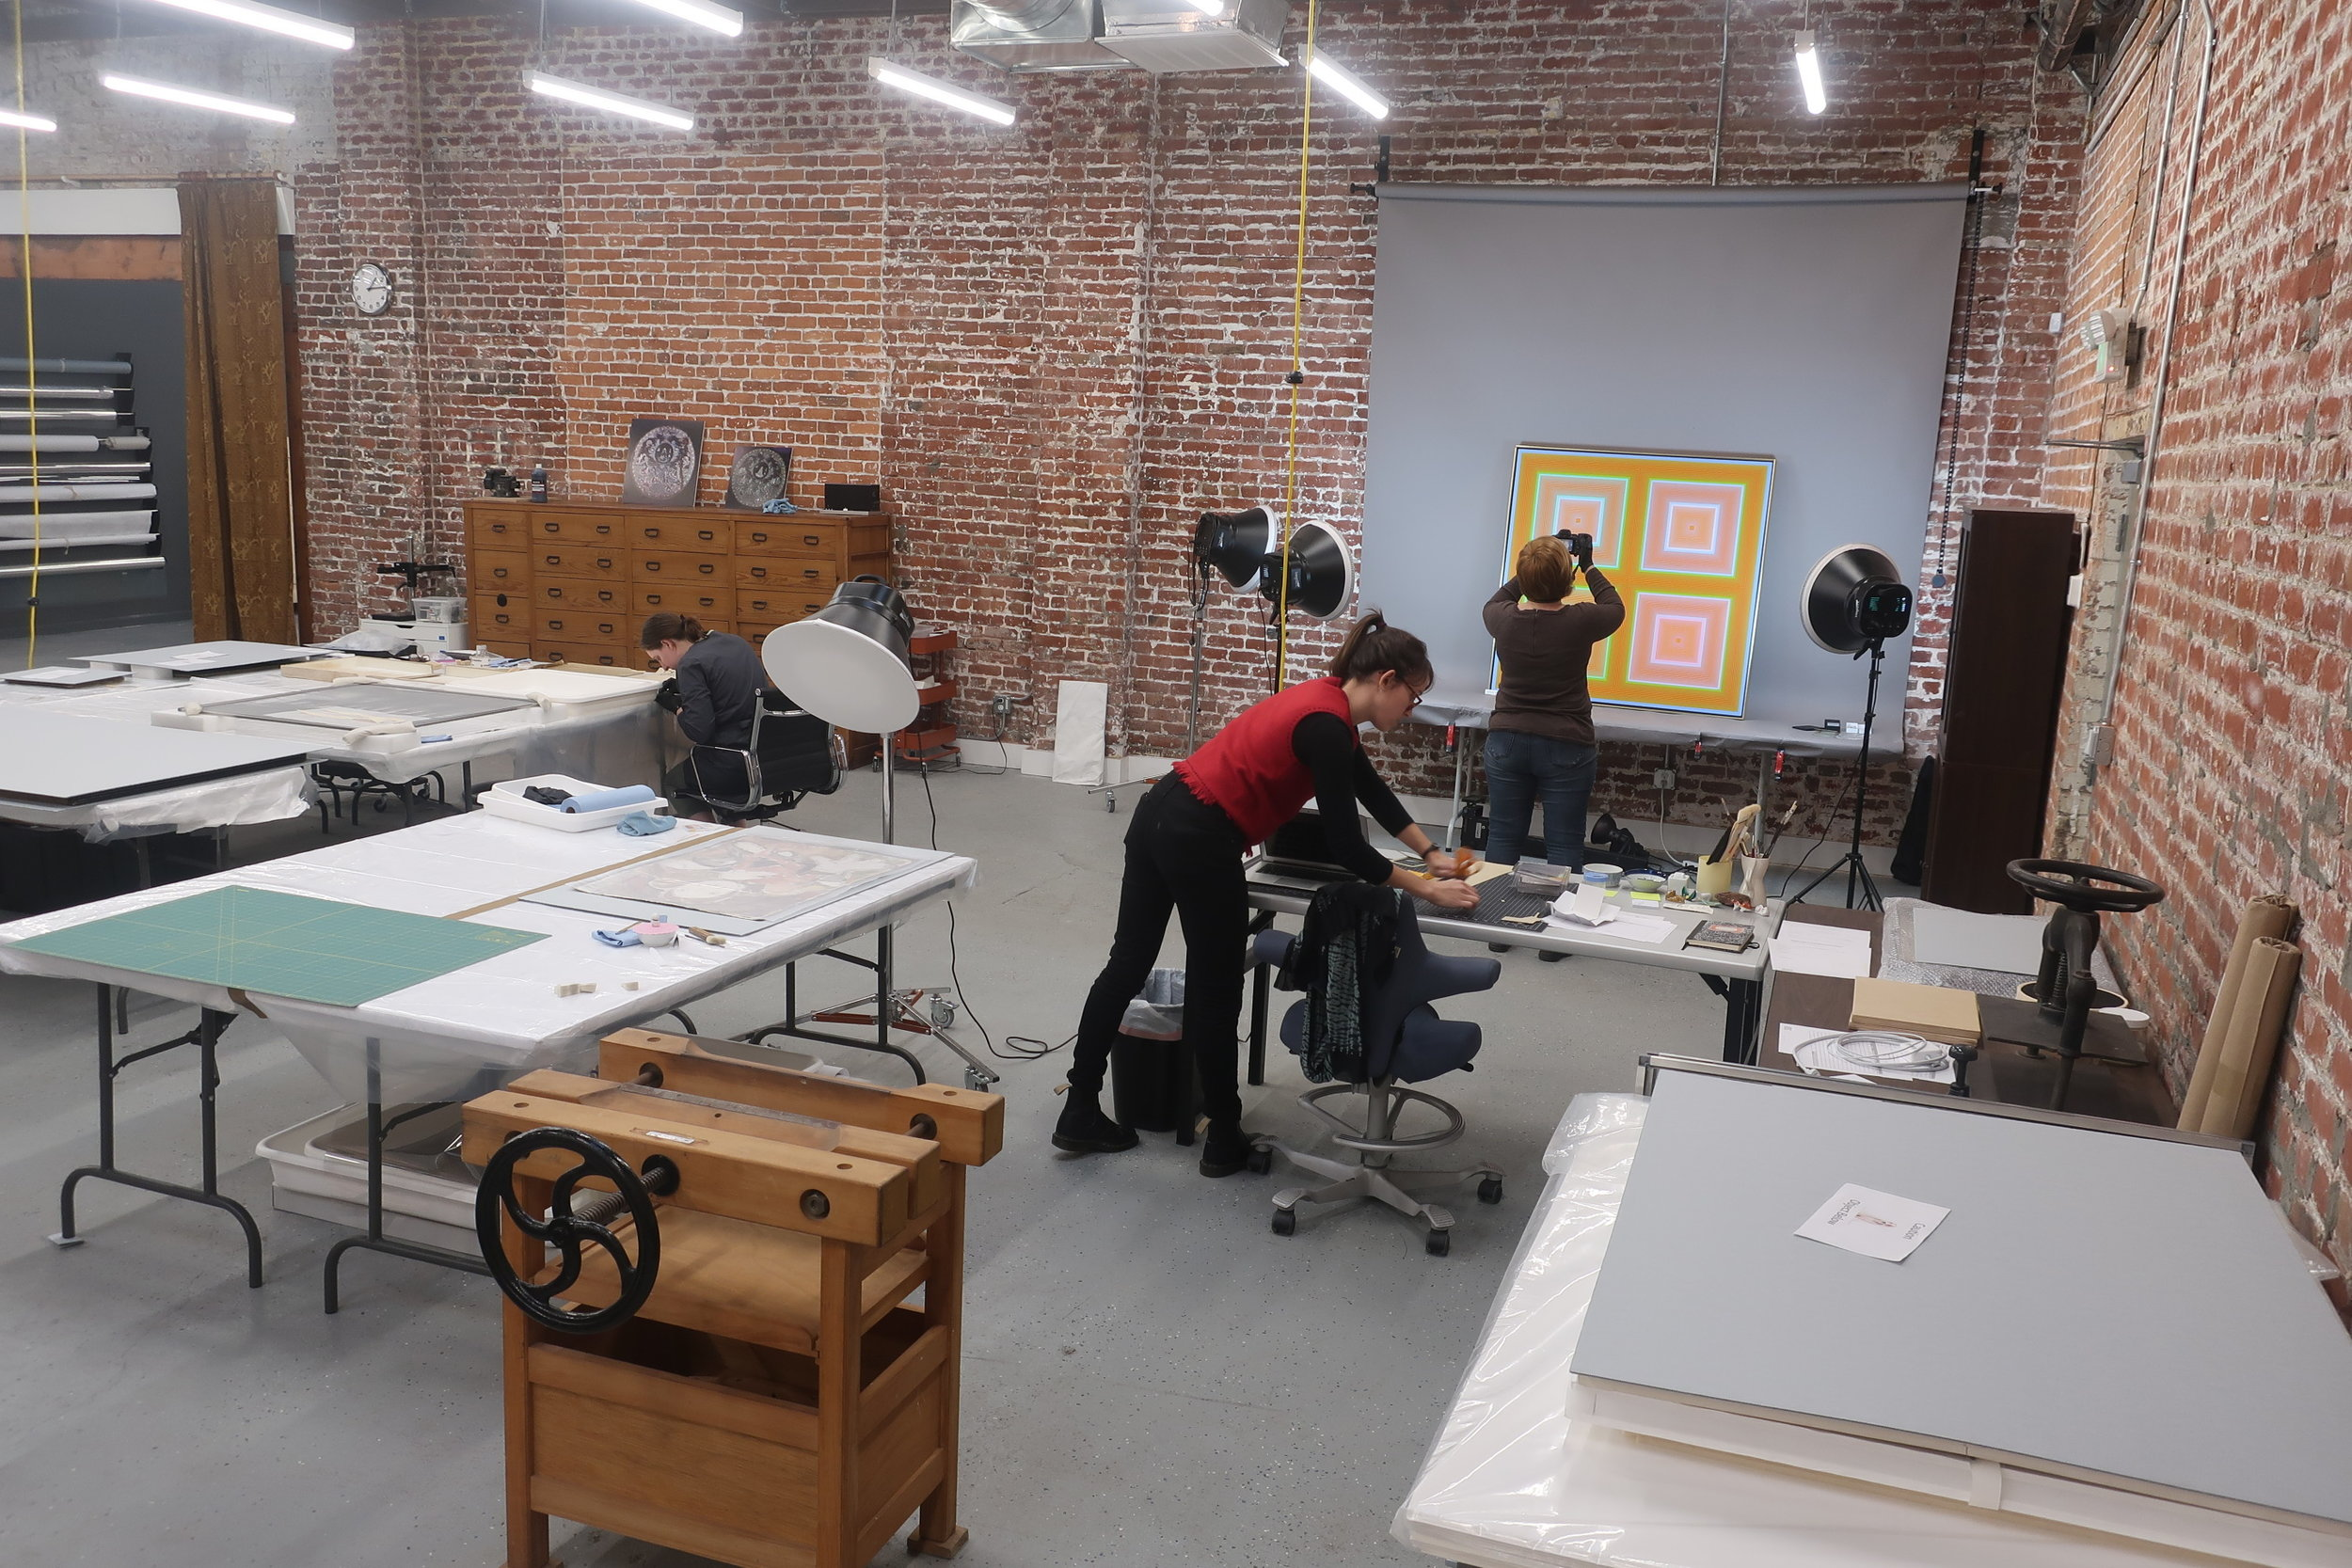 3700 sq ft front room accomodates departments for paper, painting and objects as well as photography area.